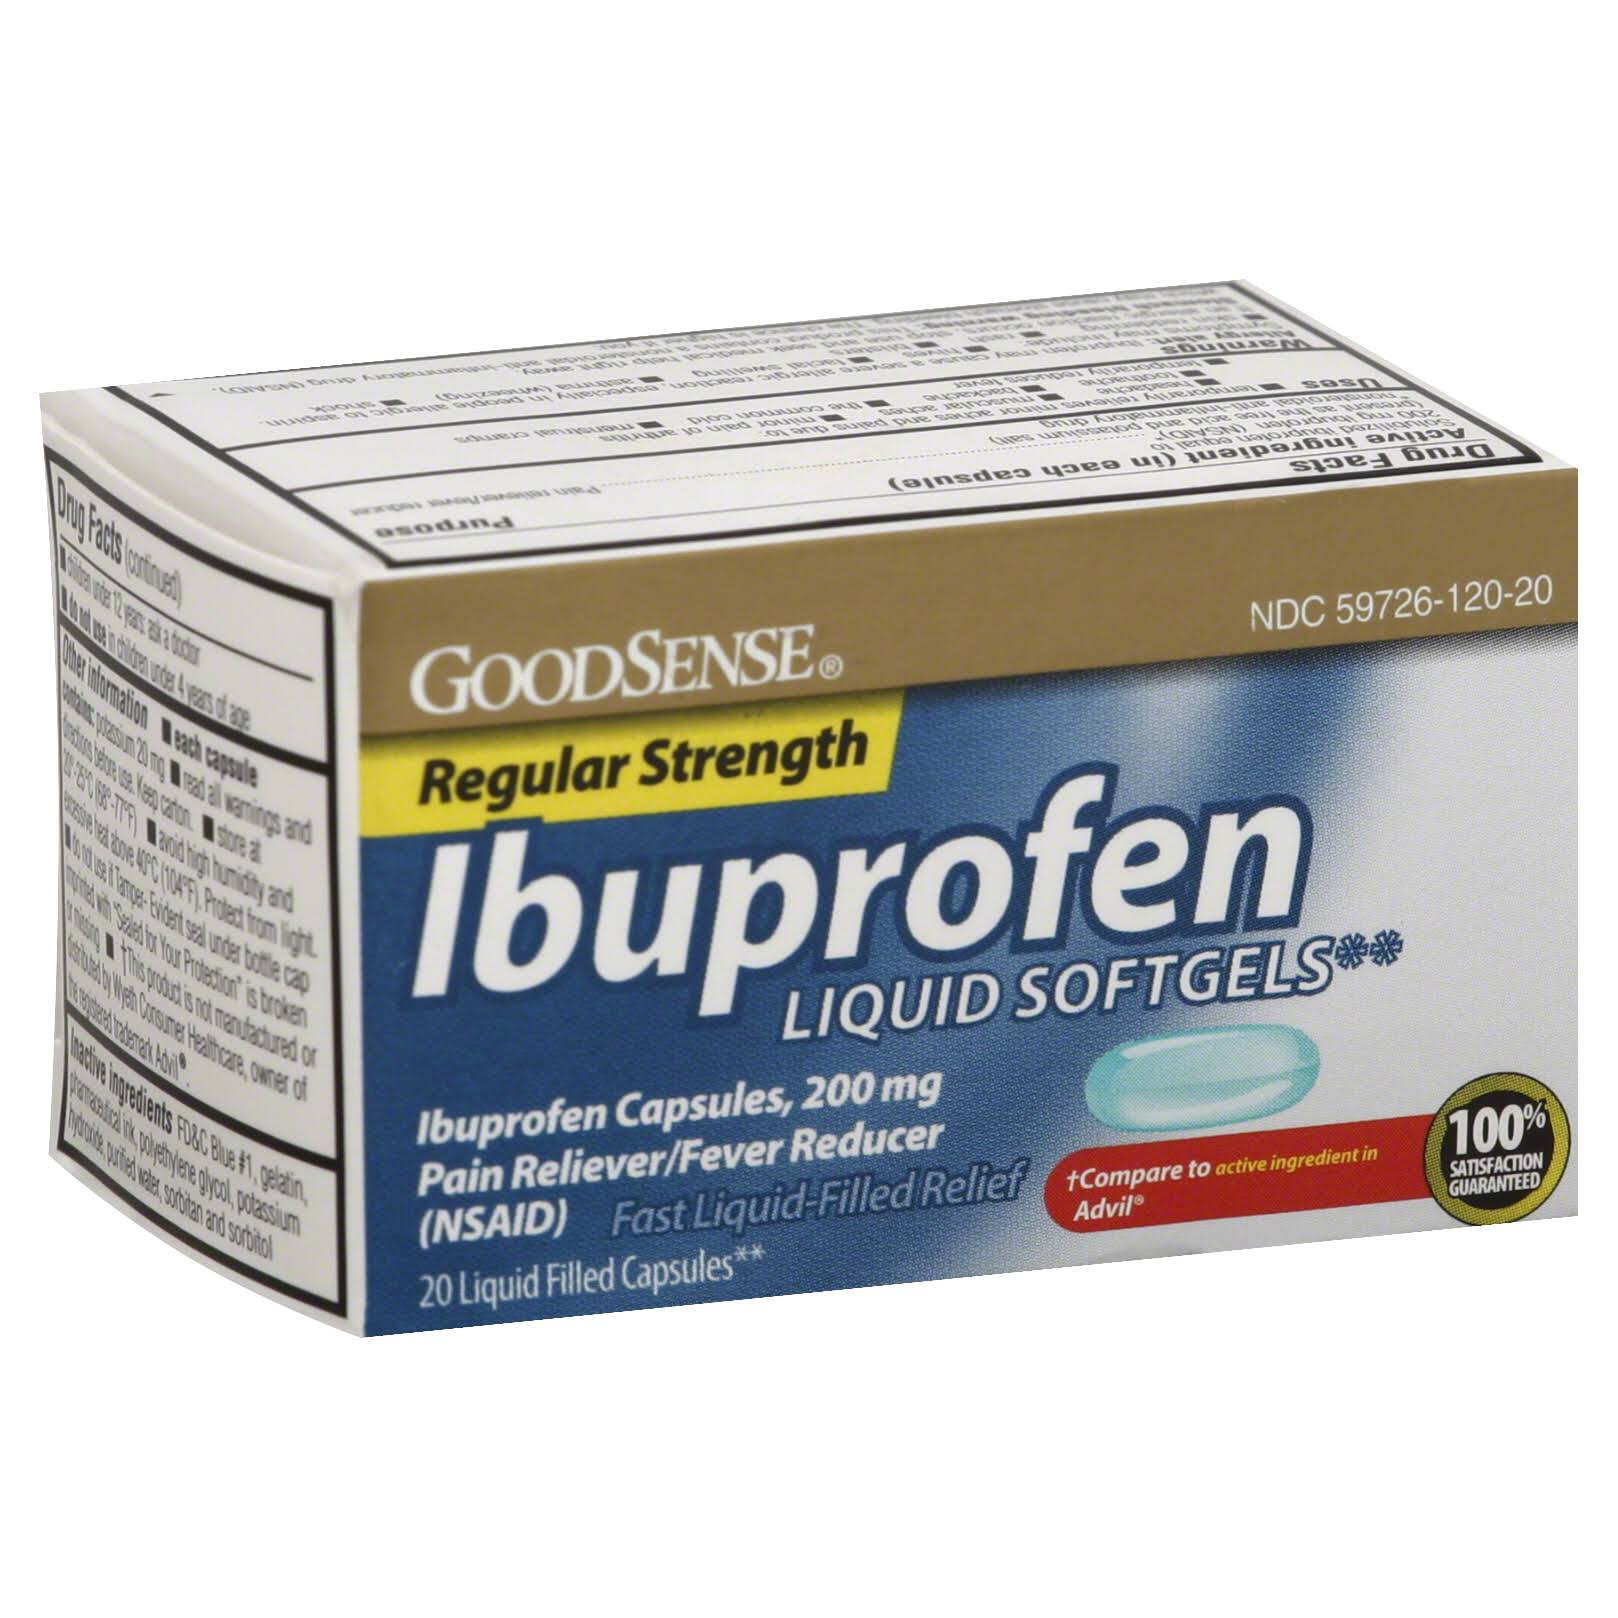 Good Sense Ibuprofen Liquid Softgel - 20 Softgels